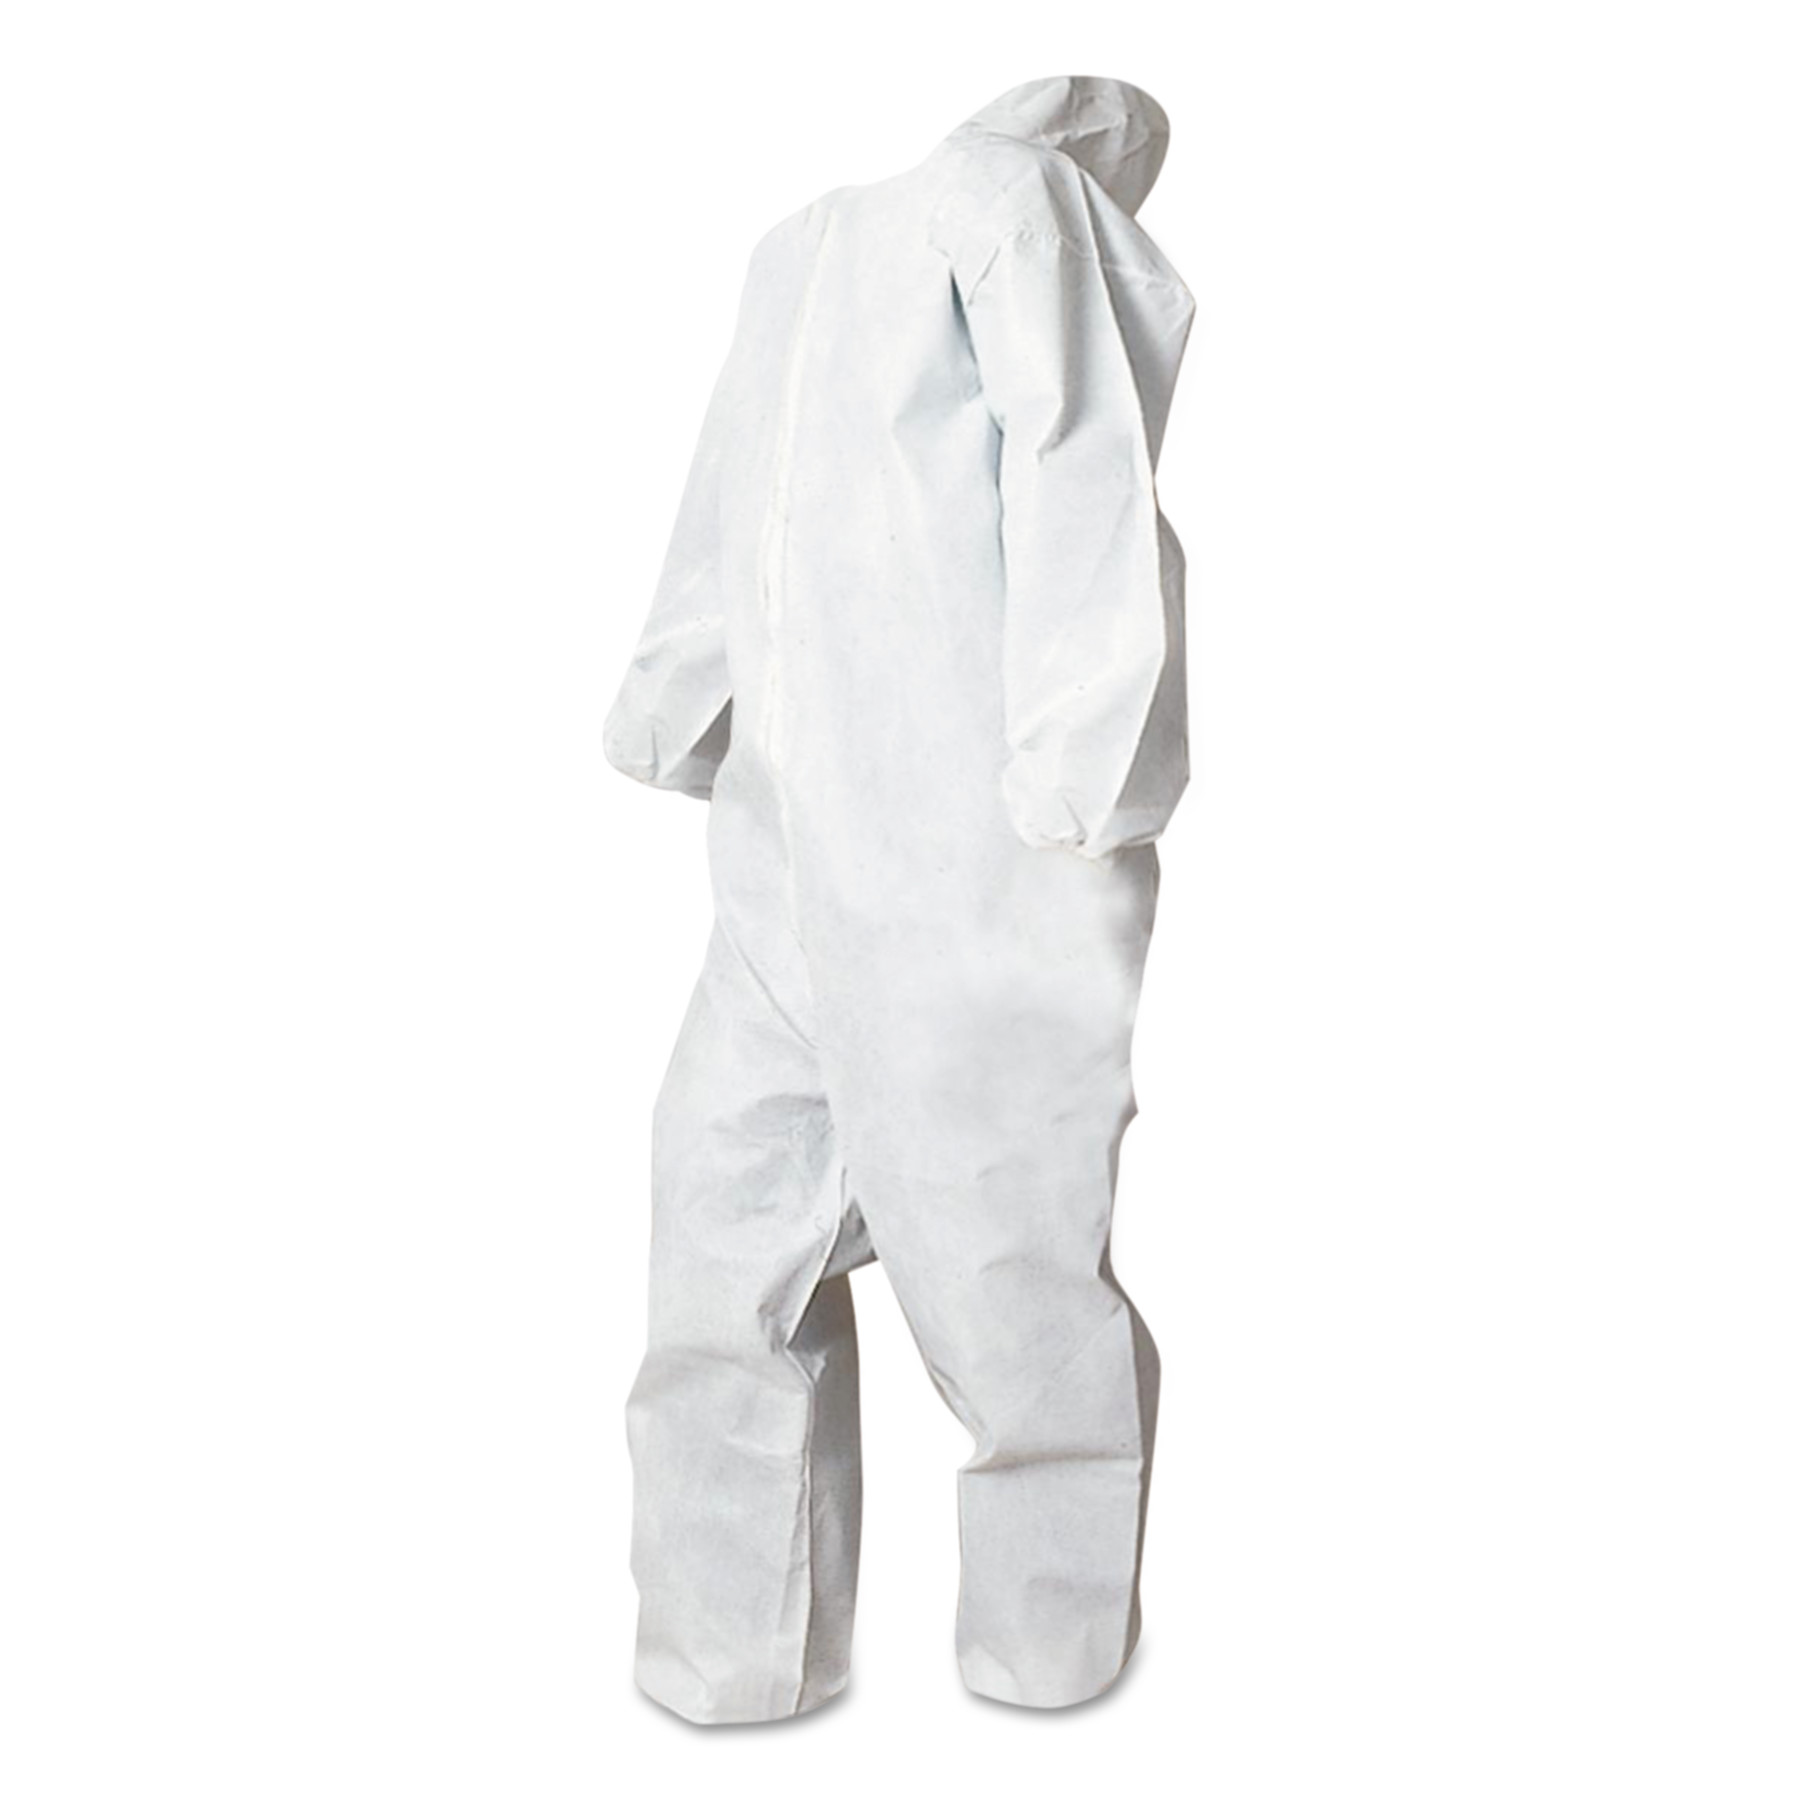 Boardwalk Disposable Coveralls, White, XXL, Polypropylene, 25 Carton by BOARDWALK